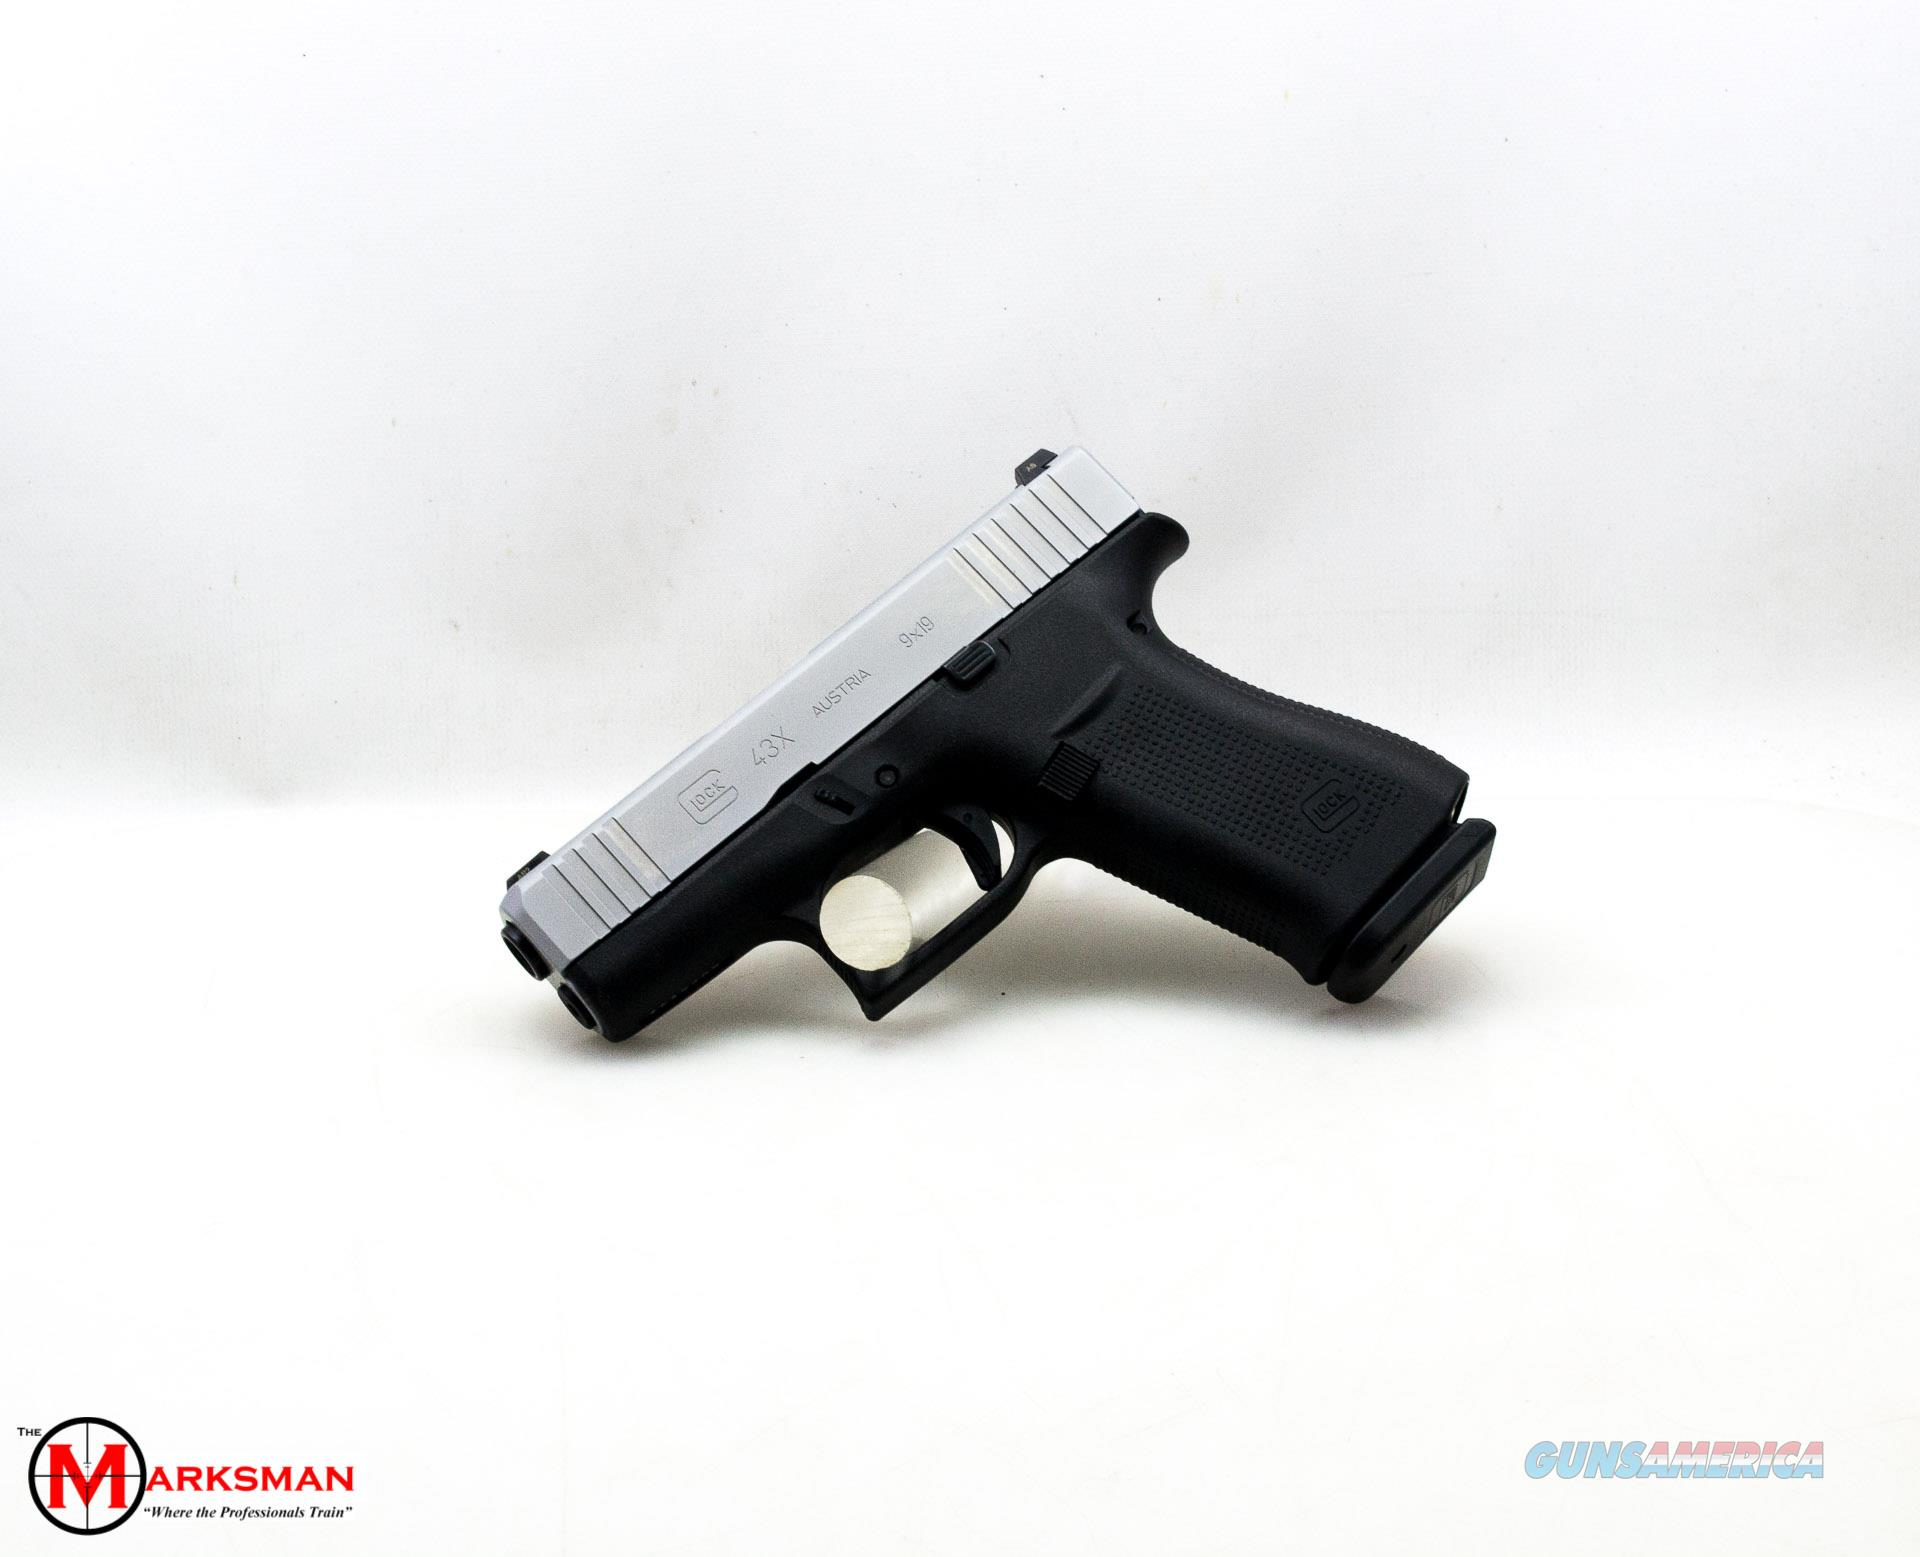 Glock 43X, 9mm, Tritium Night Sights NEW  Guns > Pistols > Glock Pistols > 43/43X